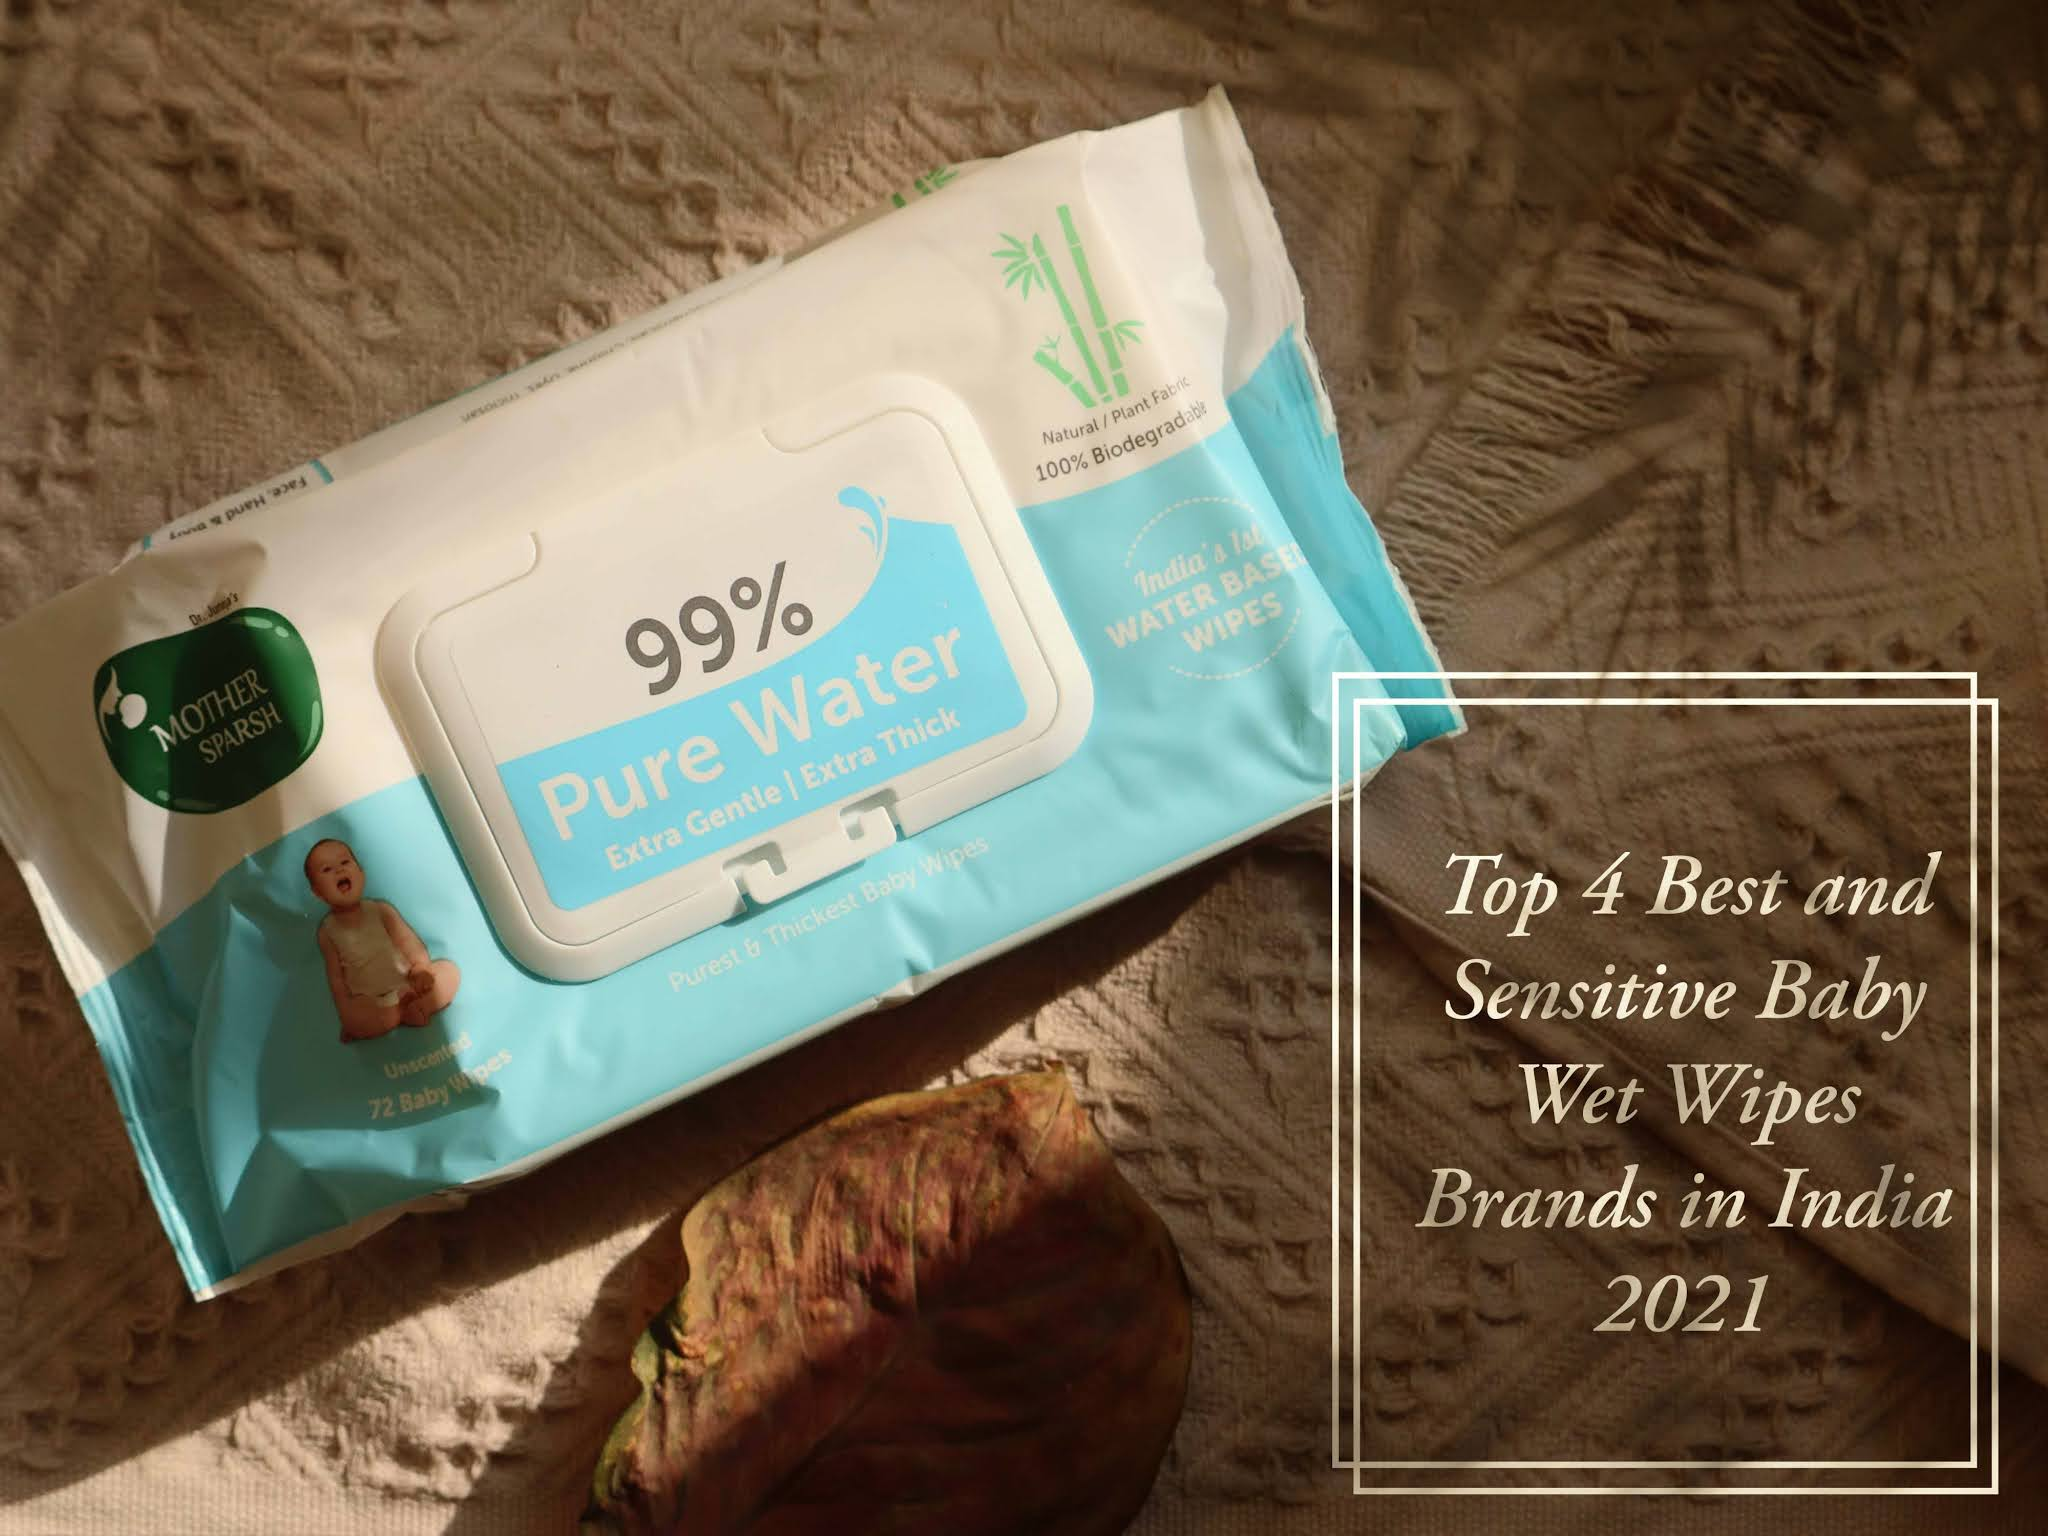 Top 4 Best and Sensitive Baby Wet Wipes Brands in India 2021